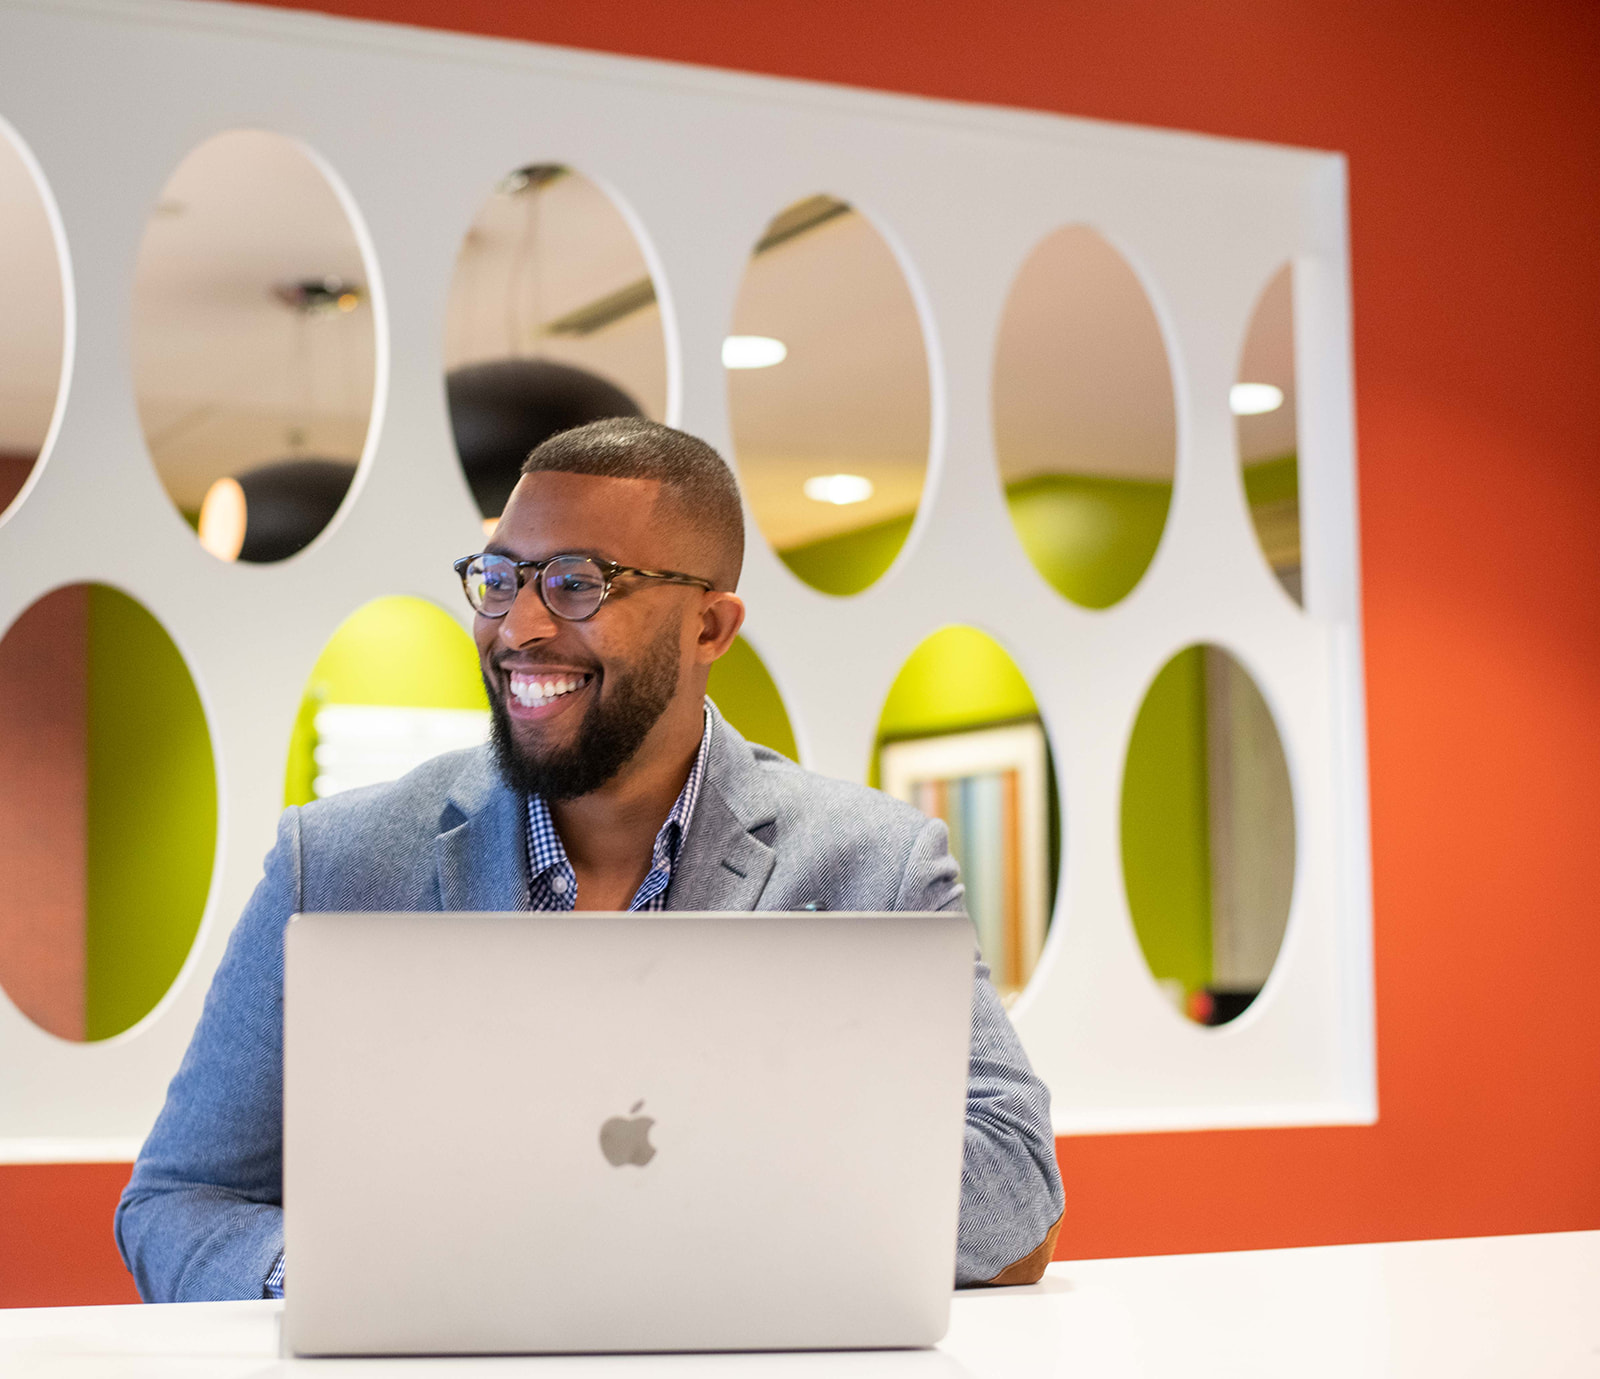 34-Year-Old Entrepreneur And Cybersecurity Expert Boyd Clewis Featured On Forbes